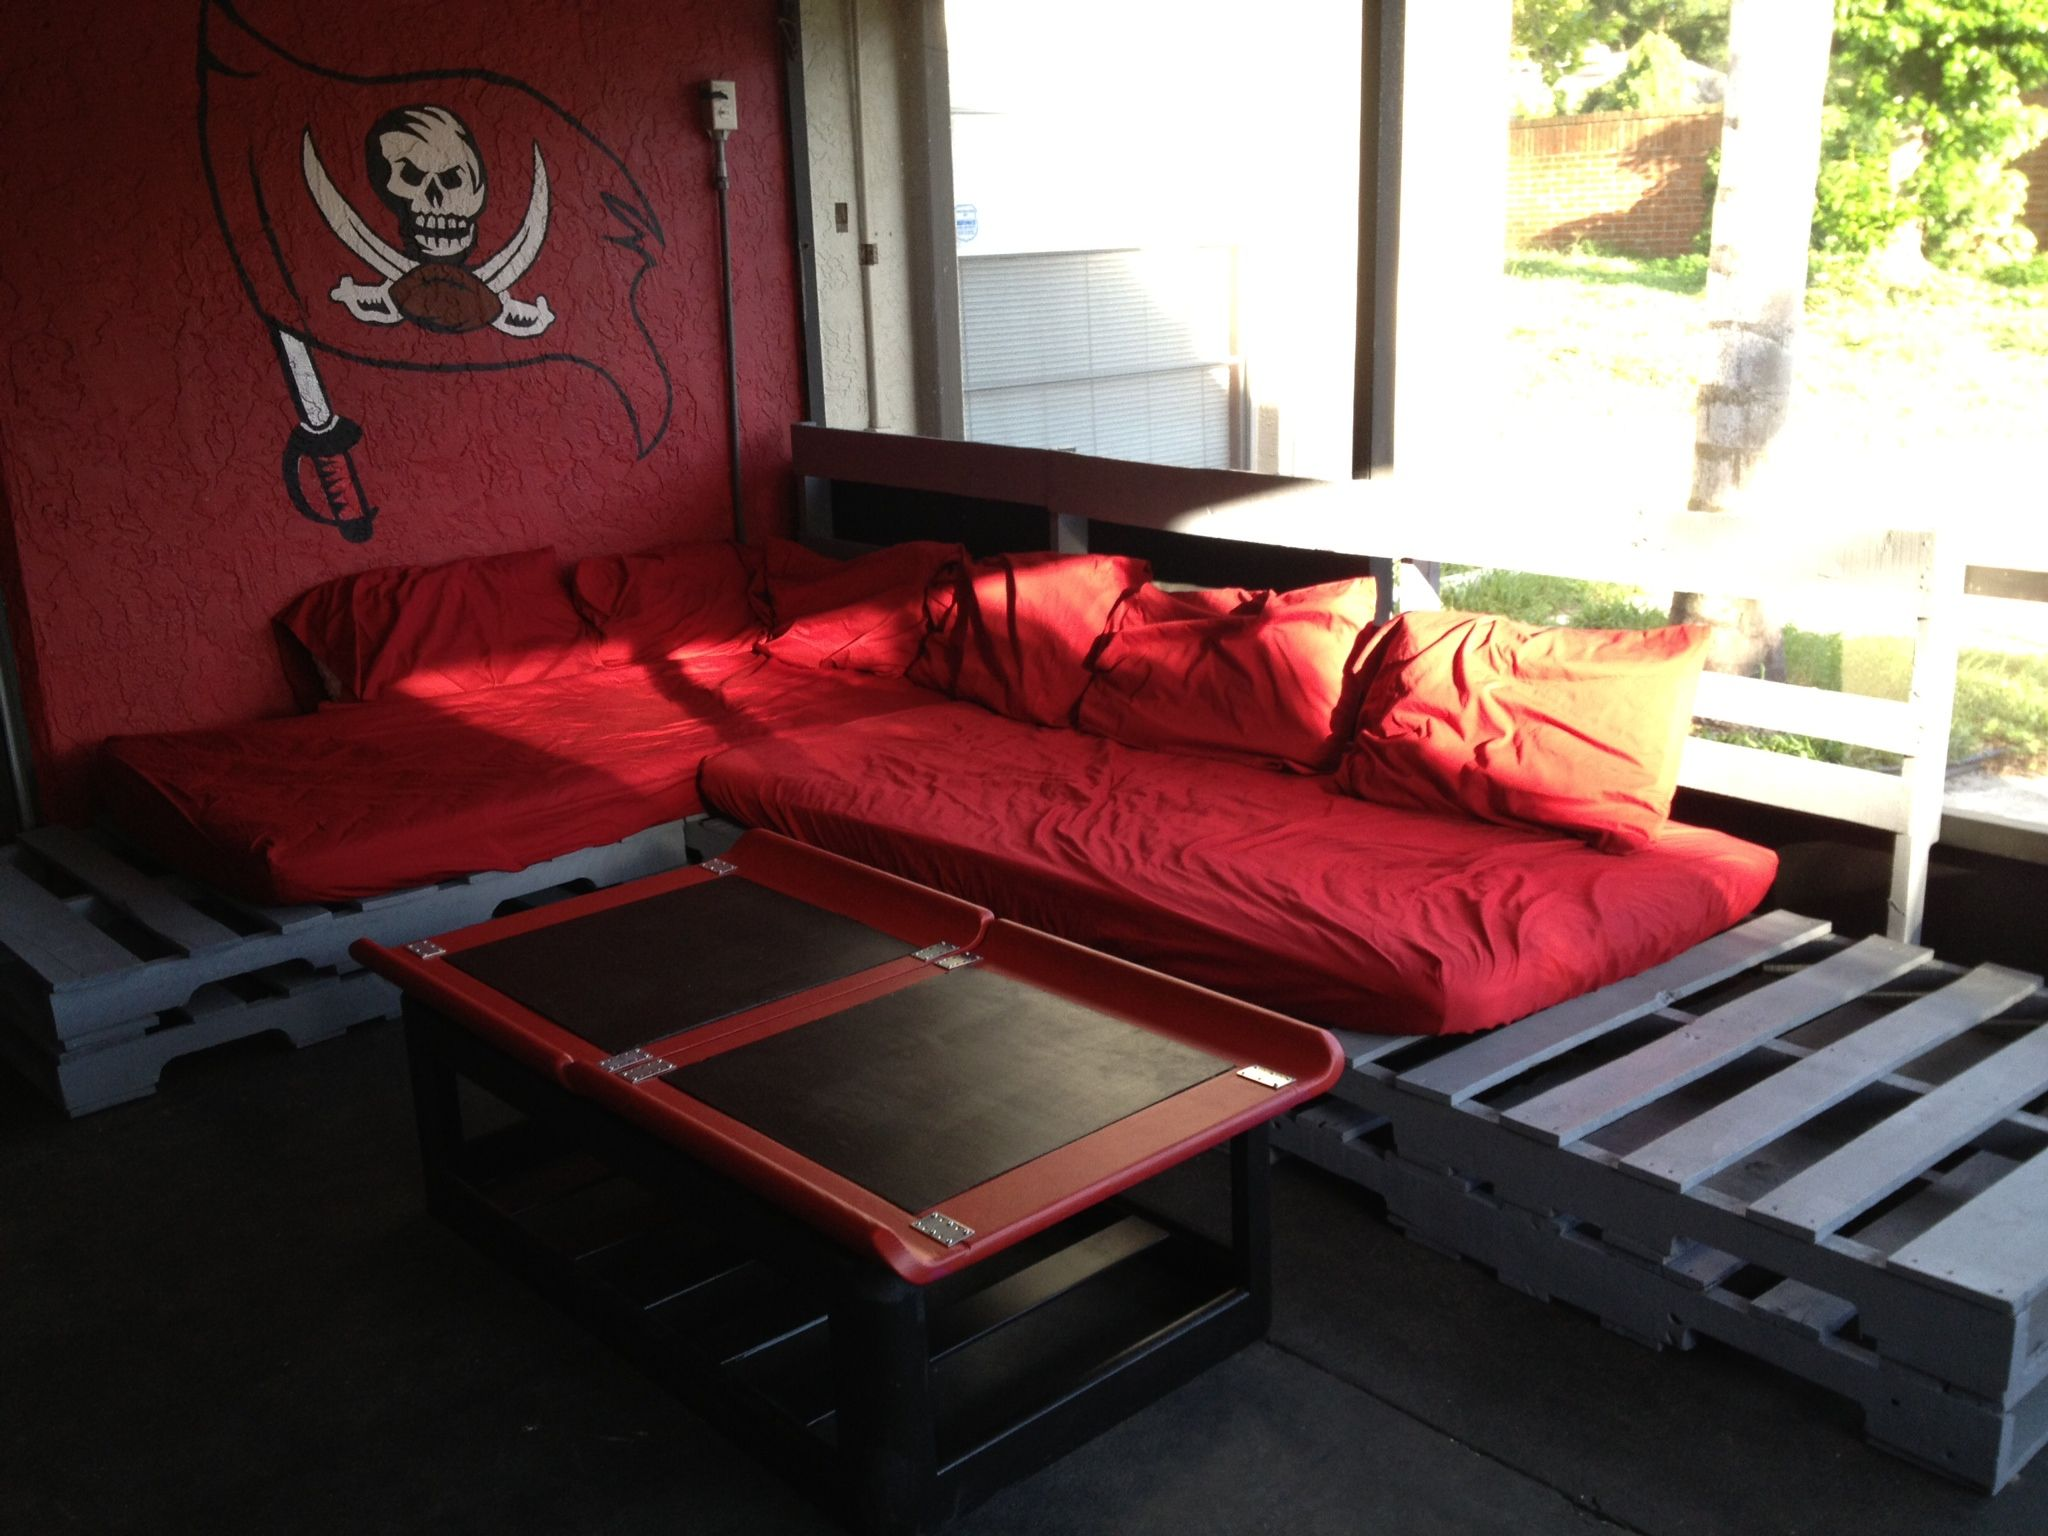 Recycled Wood Pallet L-shaped Couch Buccaneers